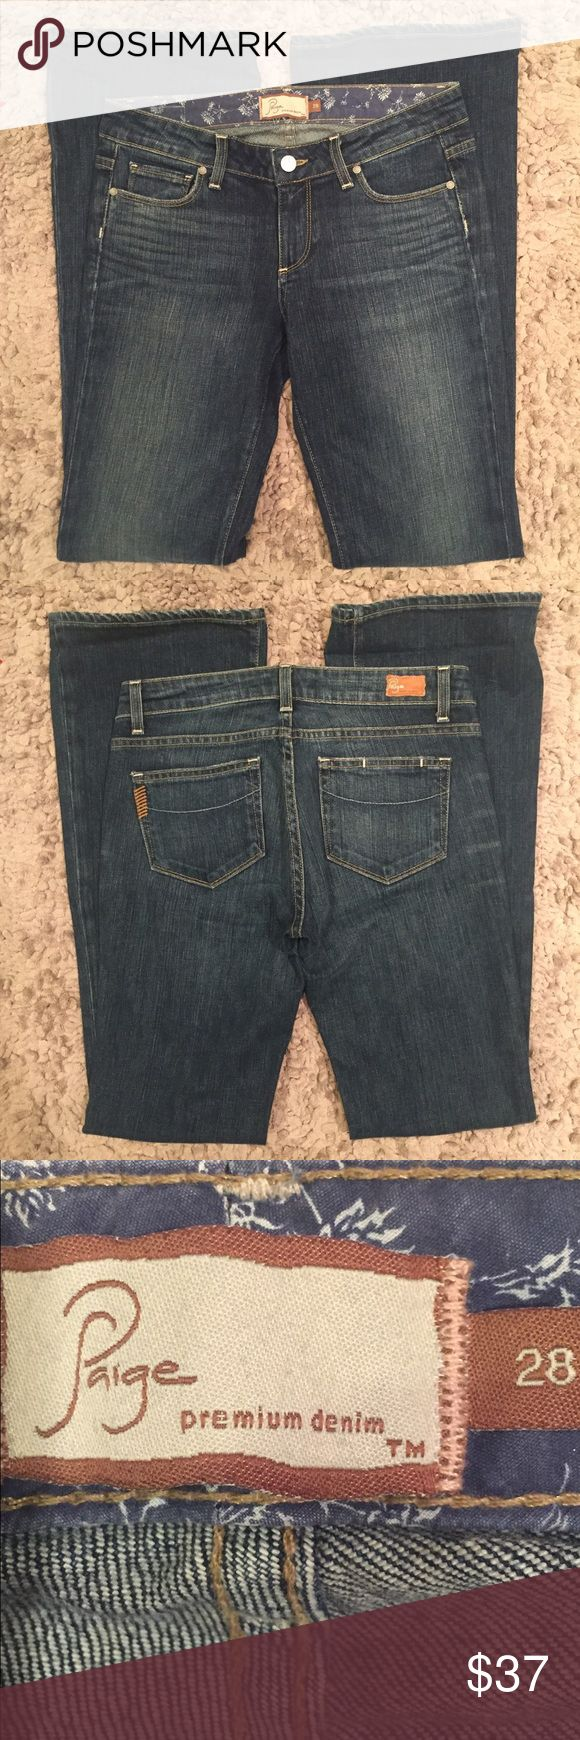 Paige premium denim jeans...Size 28 Paige premium denim jeans...Size 28 in excellent condition from a smoke free home! Paige Jeans Jeans